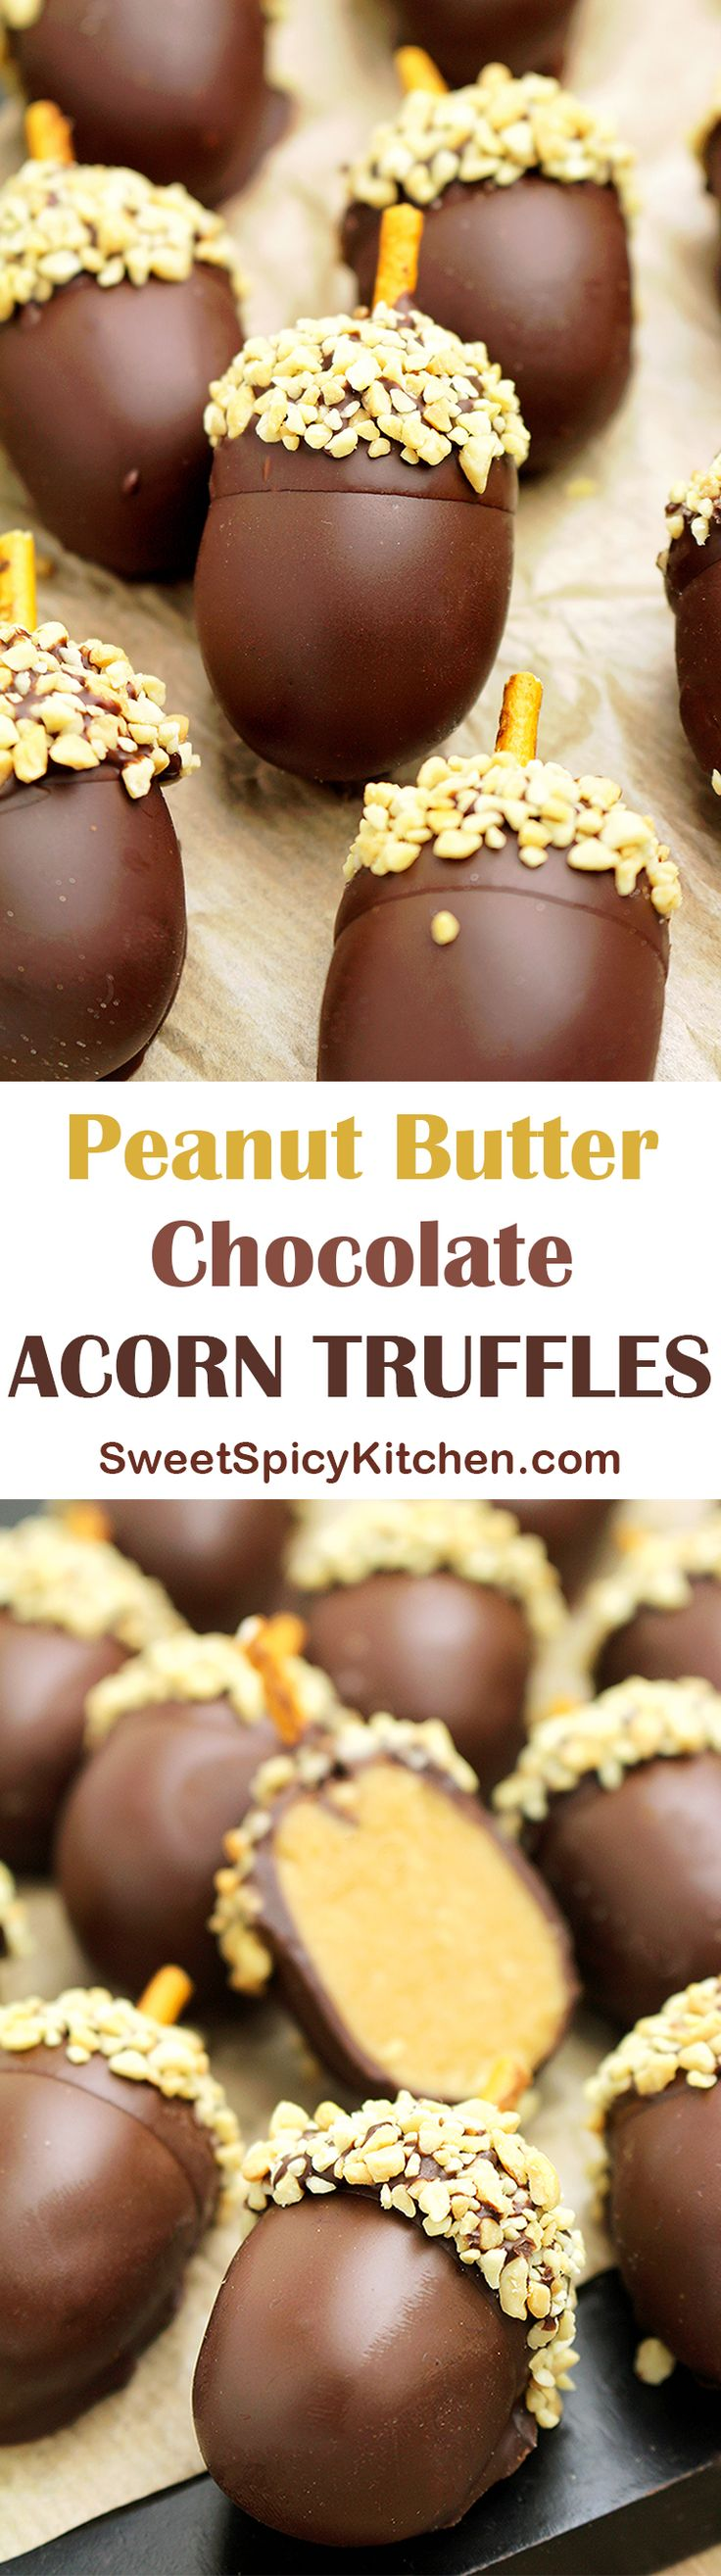 Looking for a perfect fall dessert? I was going through my cook book and found this recipe that I would like to share with you – Peanut Butter Chocolate Acorn Truffles ♥